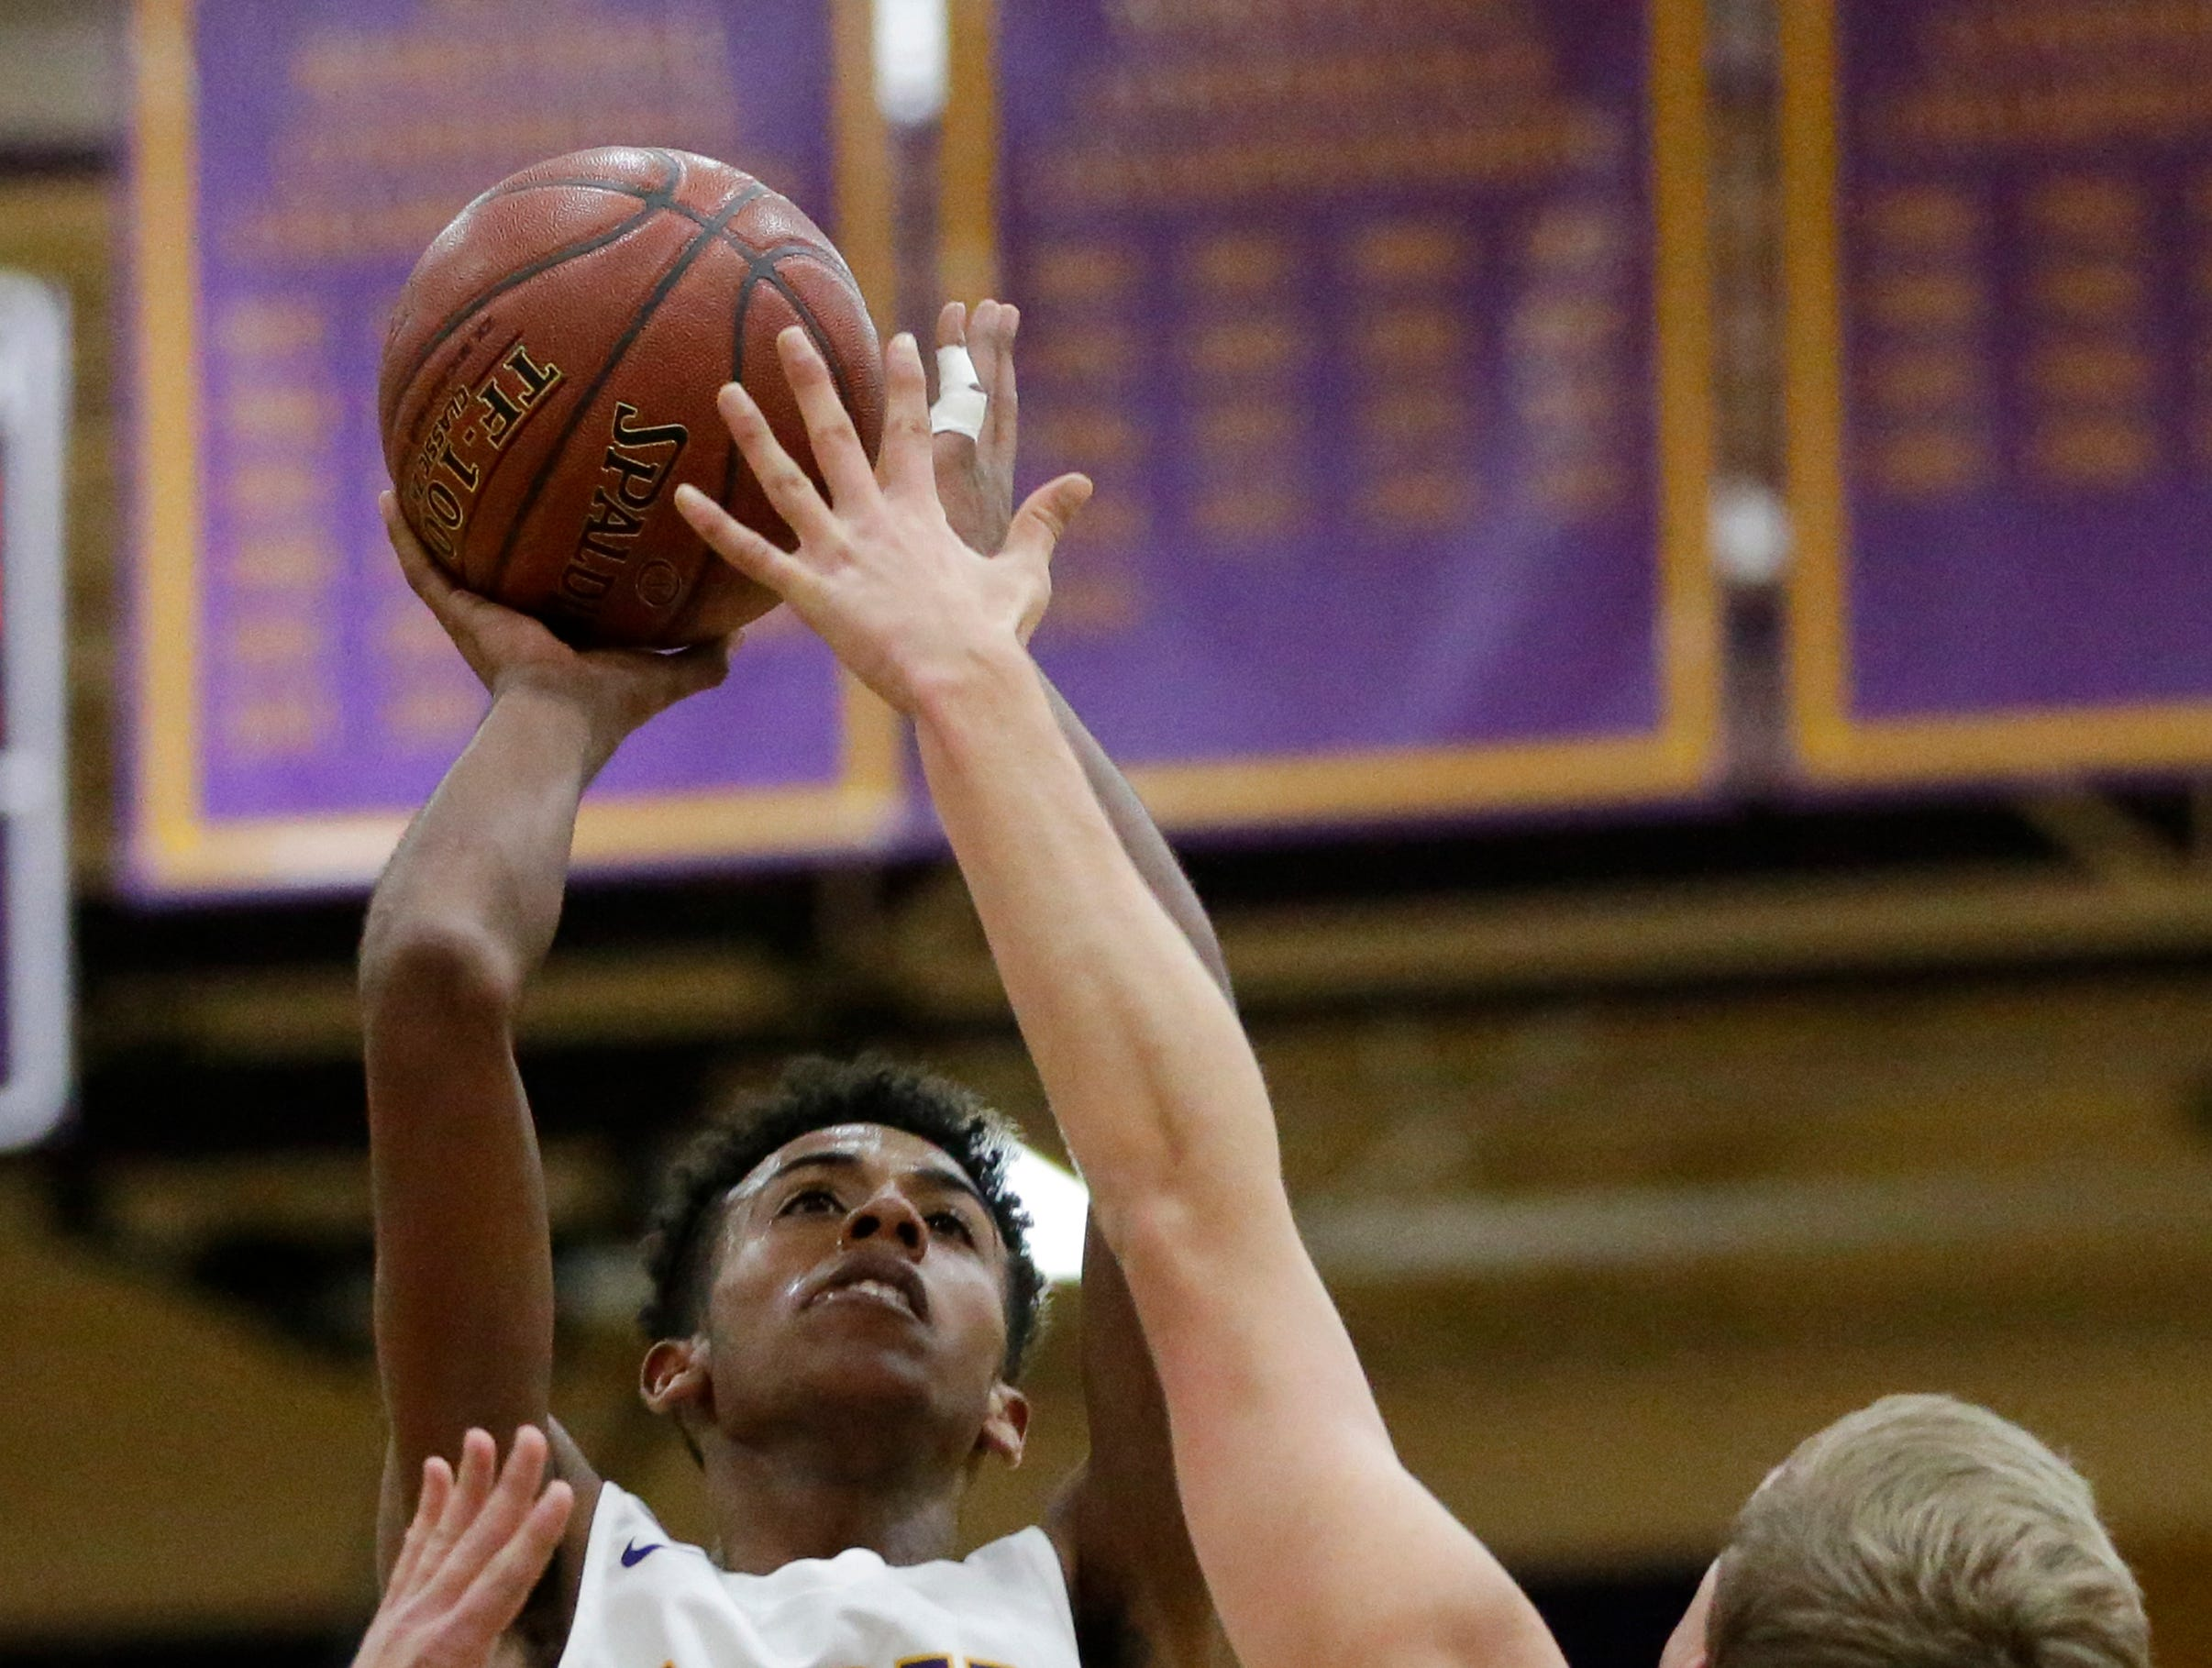 Two Rivers' Isaac Coronado puts up a shot over Sheboygan Falls' Bryce Peterson during an Eastern Wisconsin Conference game at Two Rivers High School Tuesday, December 4, 2018, in Two Rivers, Wis. Joshua Clark/USA TODAY NETWORK-Wisconsin